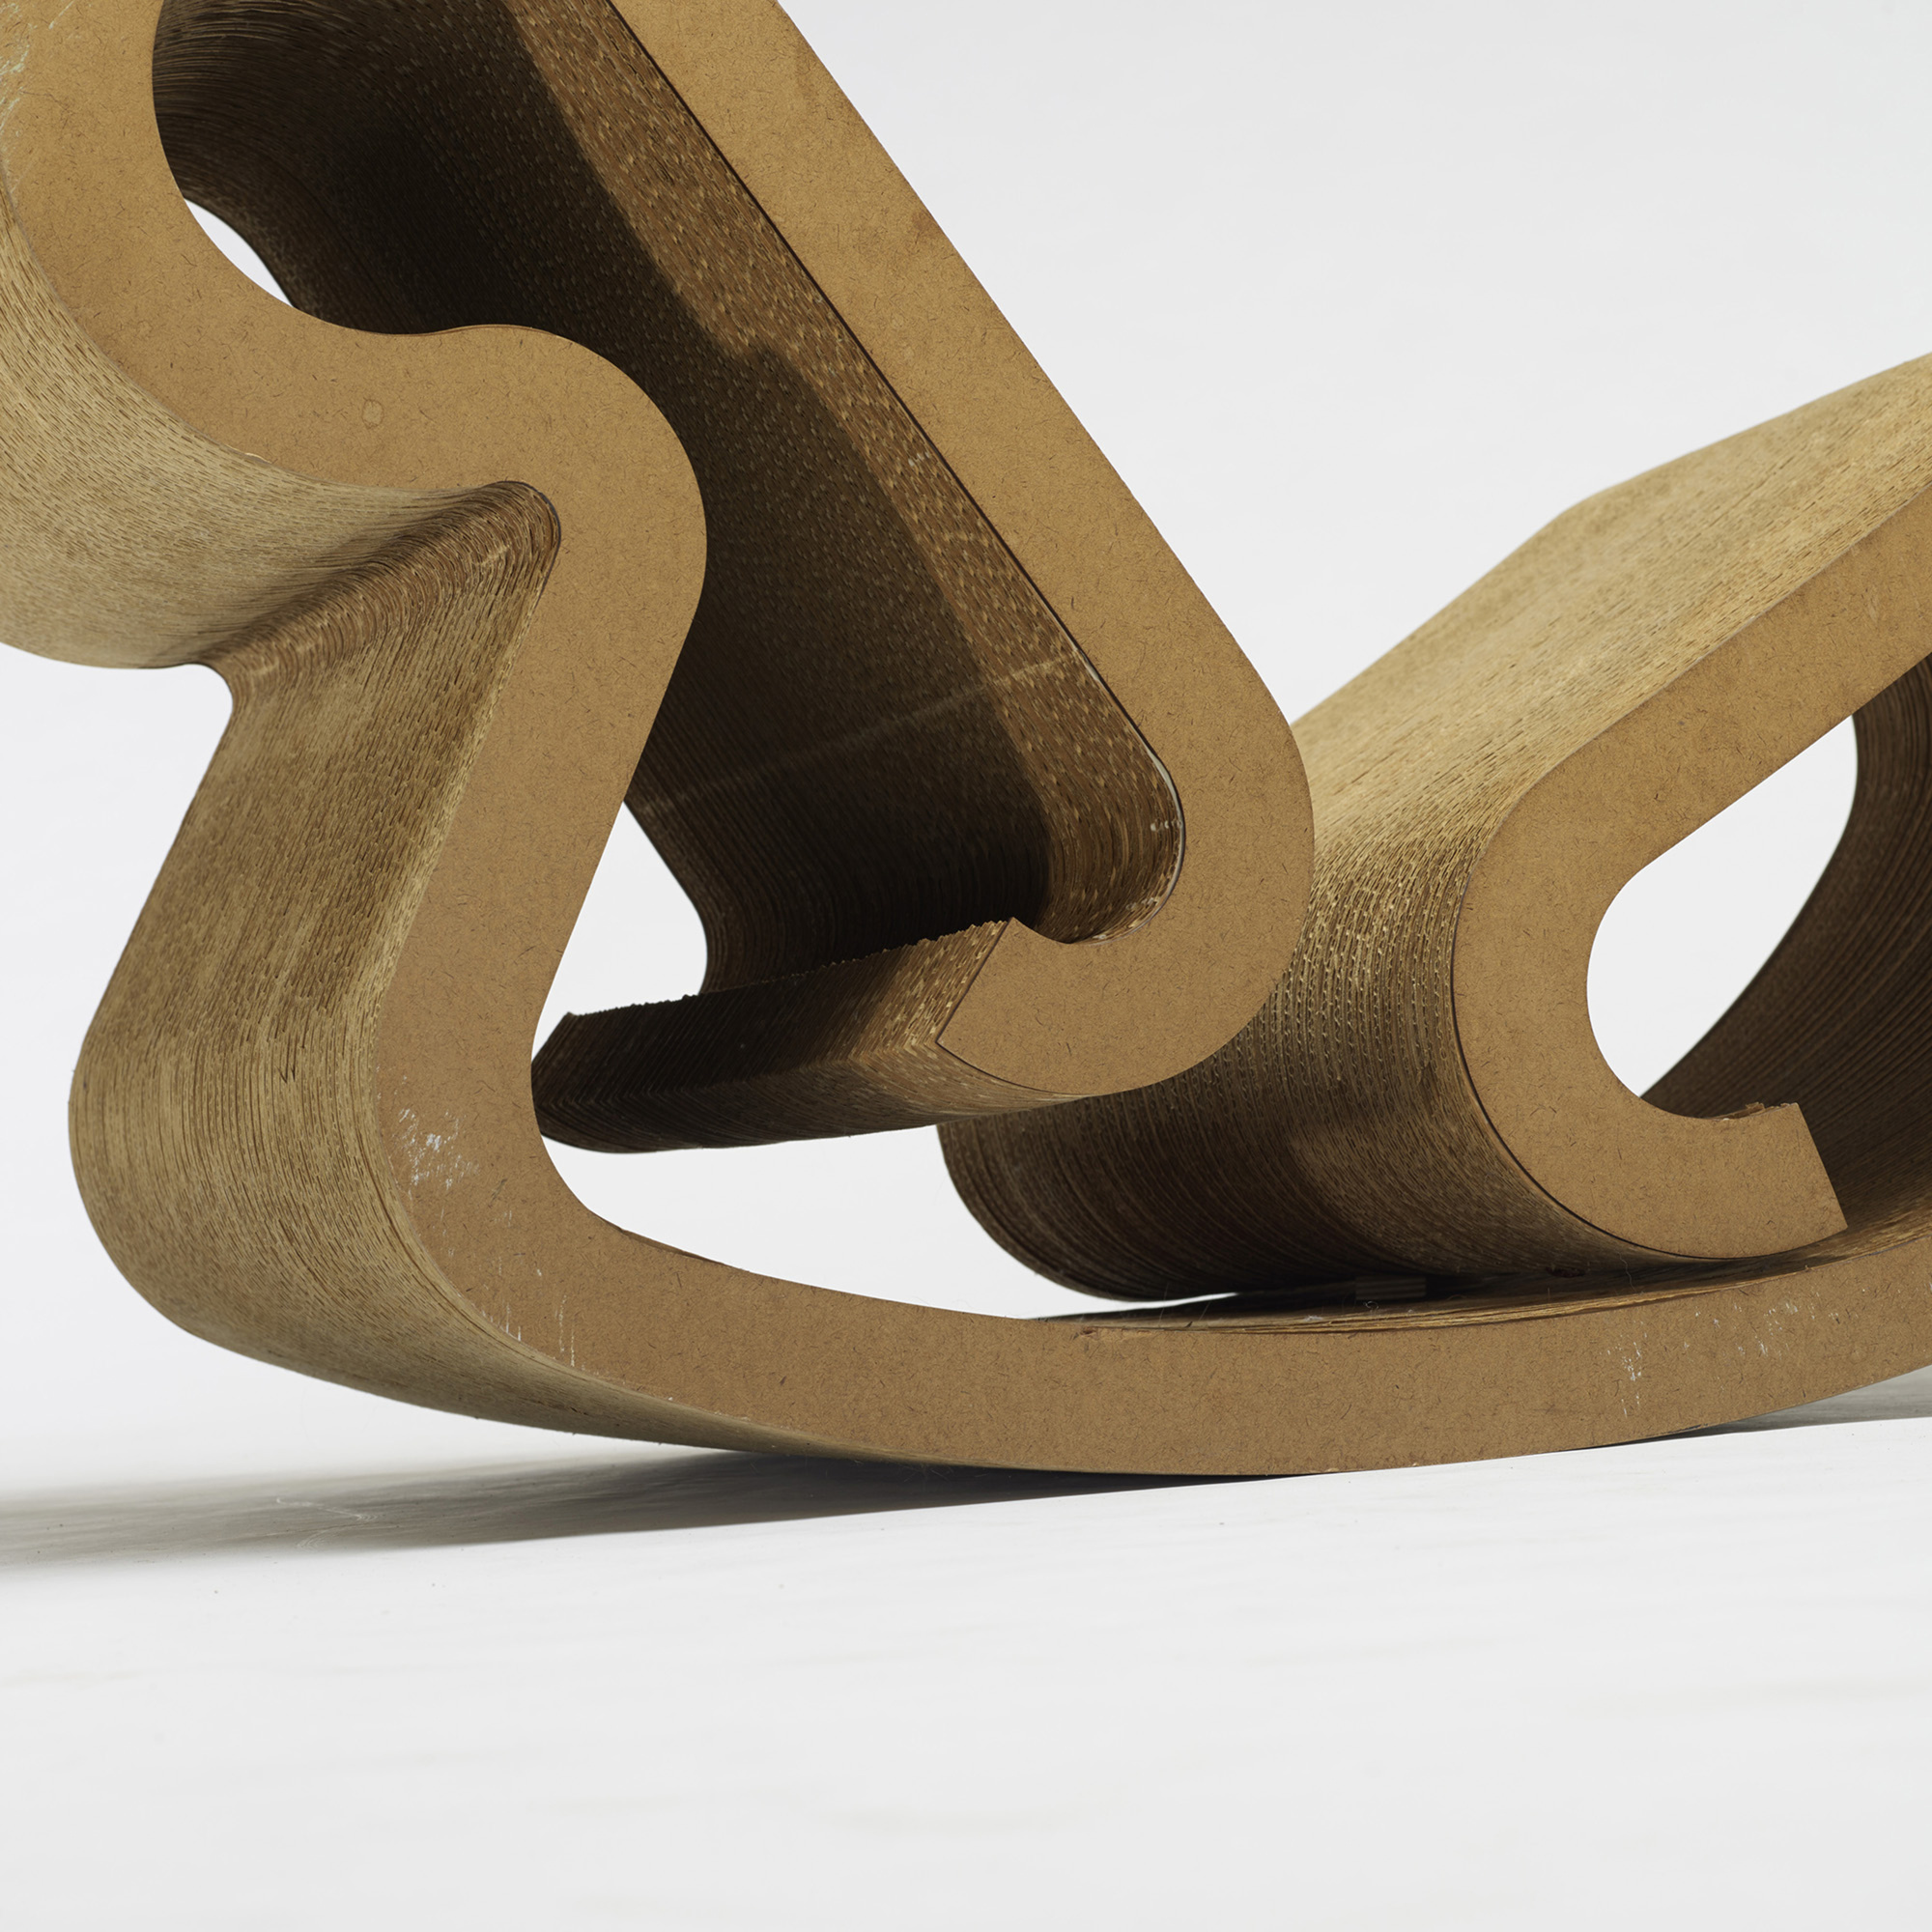 Frank Gehry Chaise Carton 267: frank gehry, rocking chaise lounge < design, 17 october